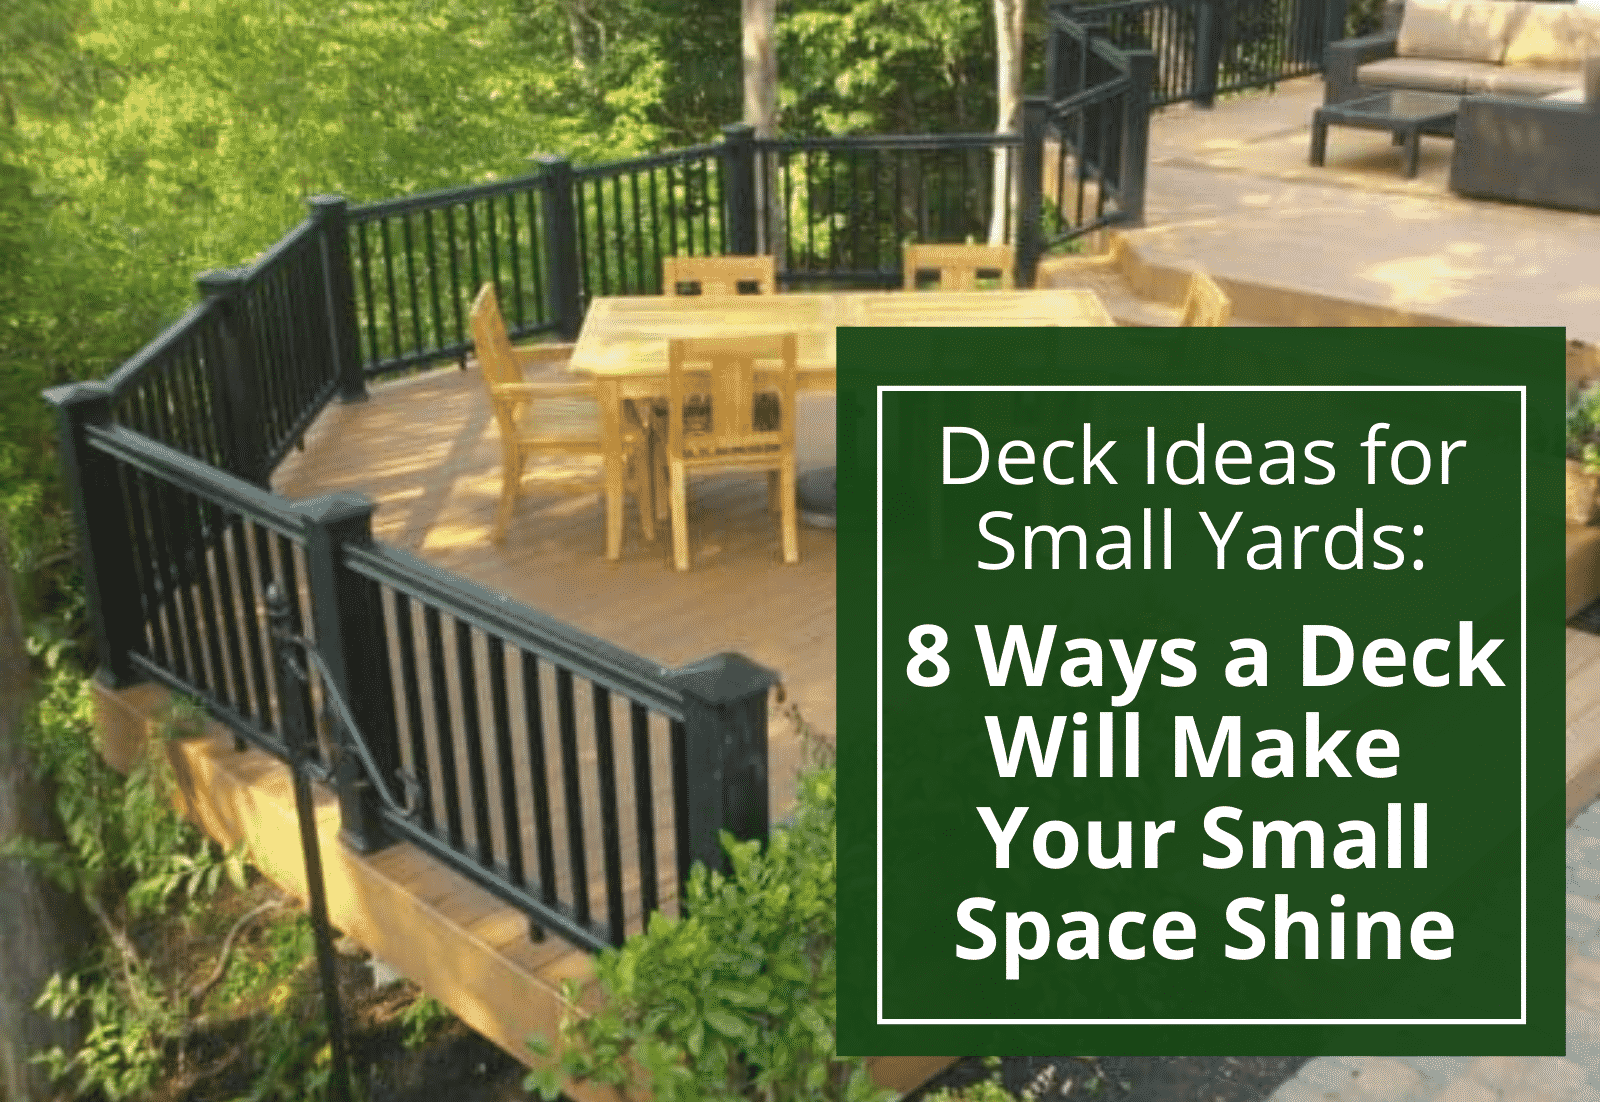 deck ideas for small yards